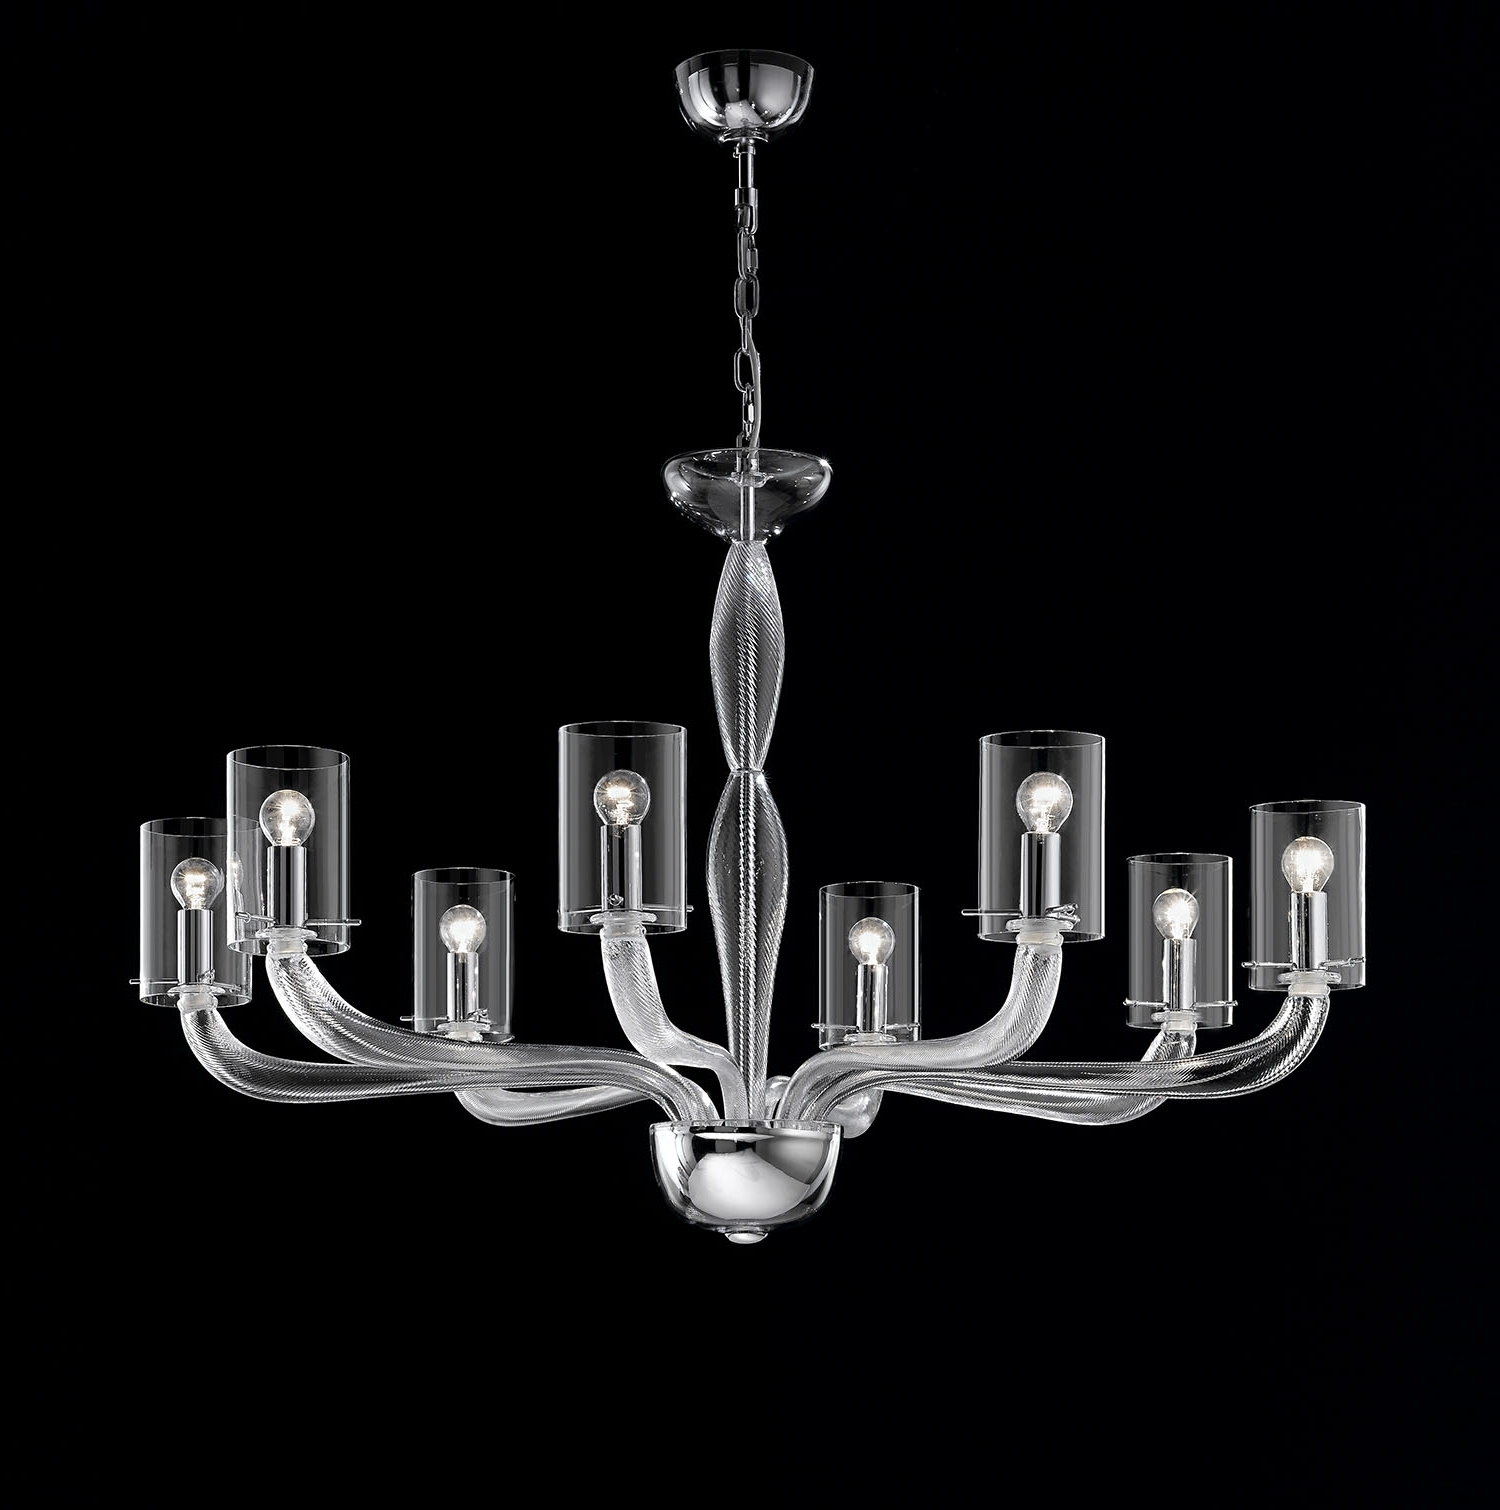 Italian Chandeliers Contemporary Regarding Newest Light : Modern Glass Chandelier Lighting Beautiful Italian (View 6 of 15)